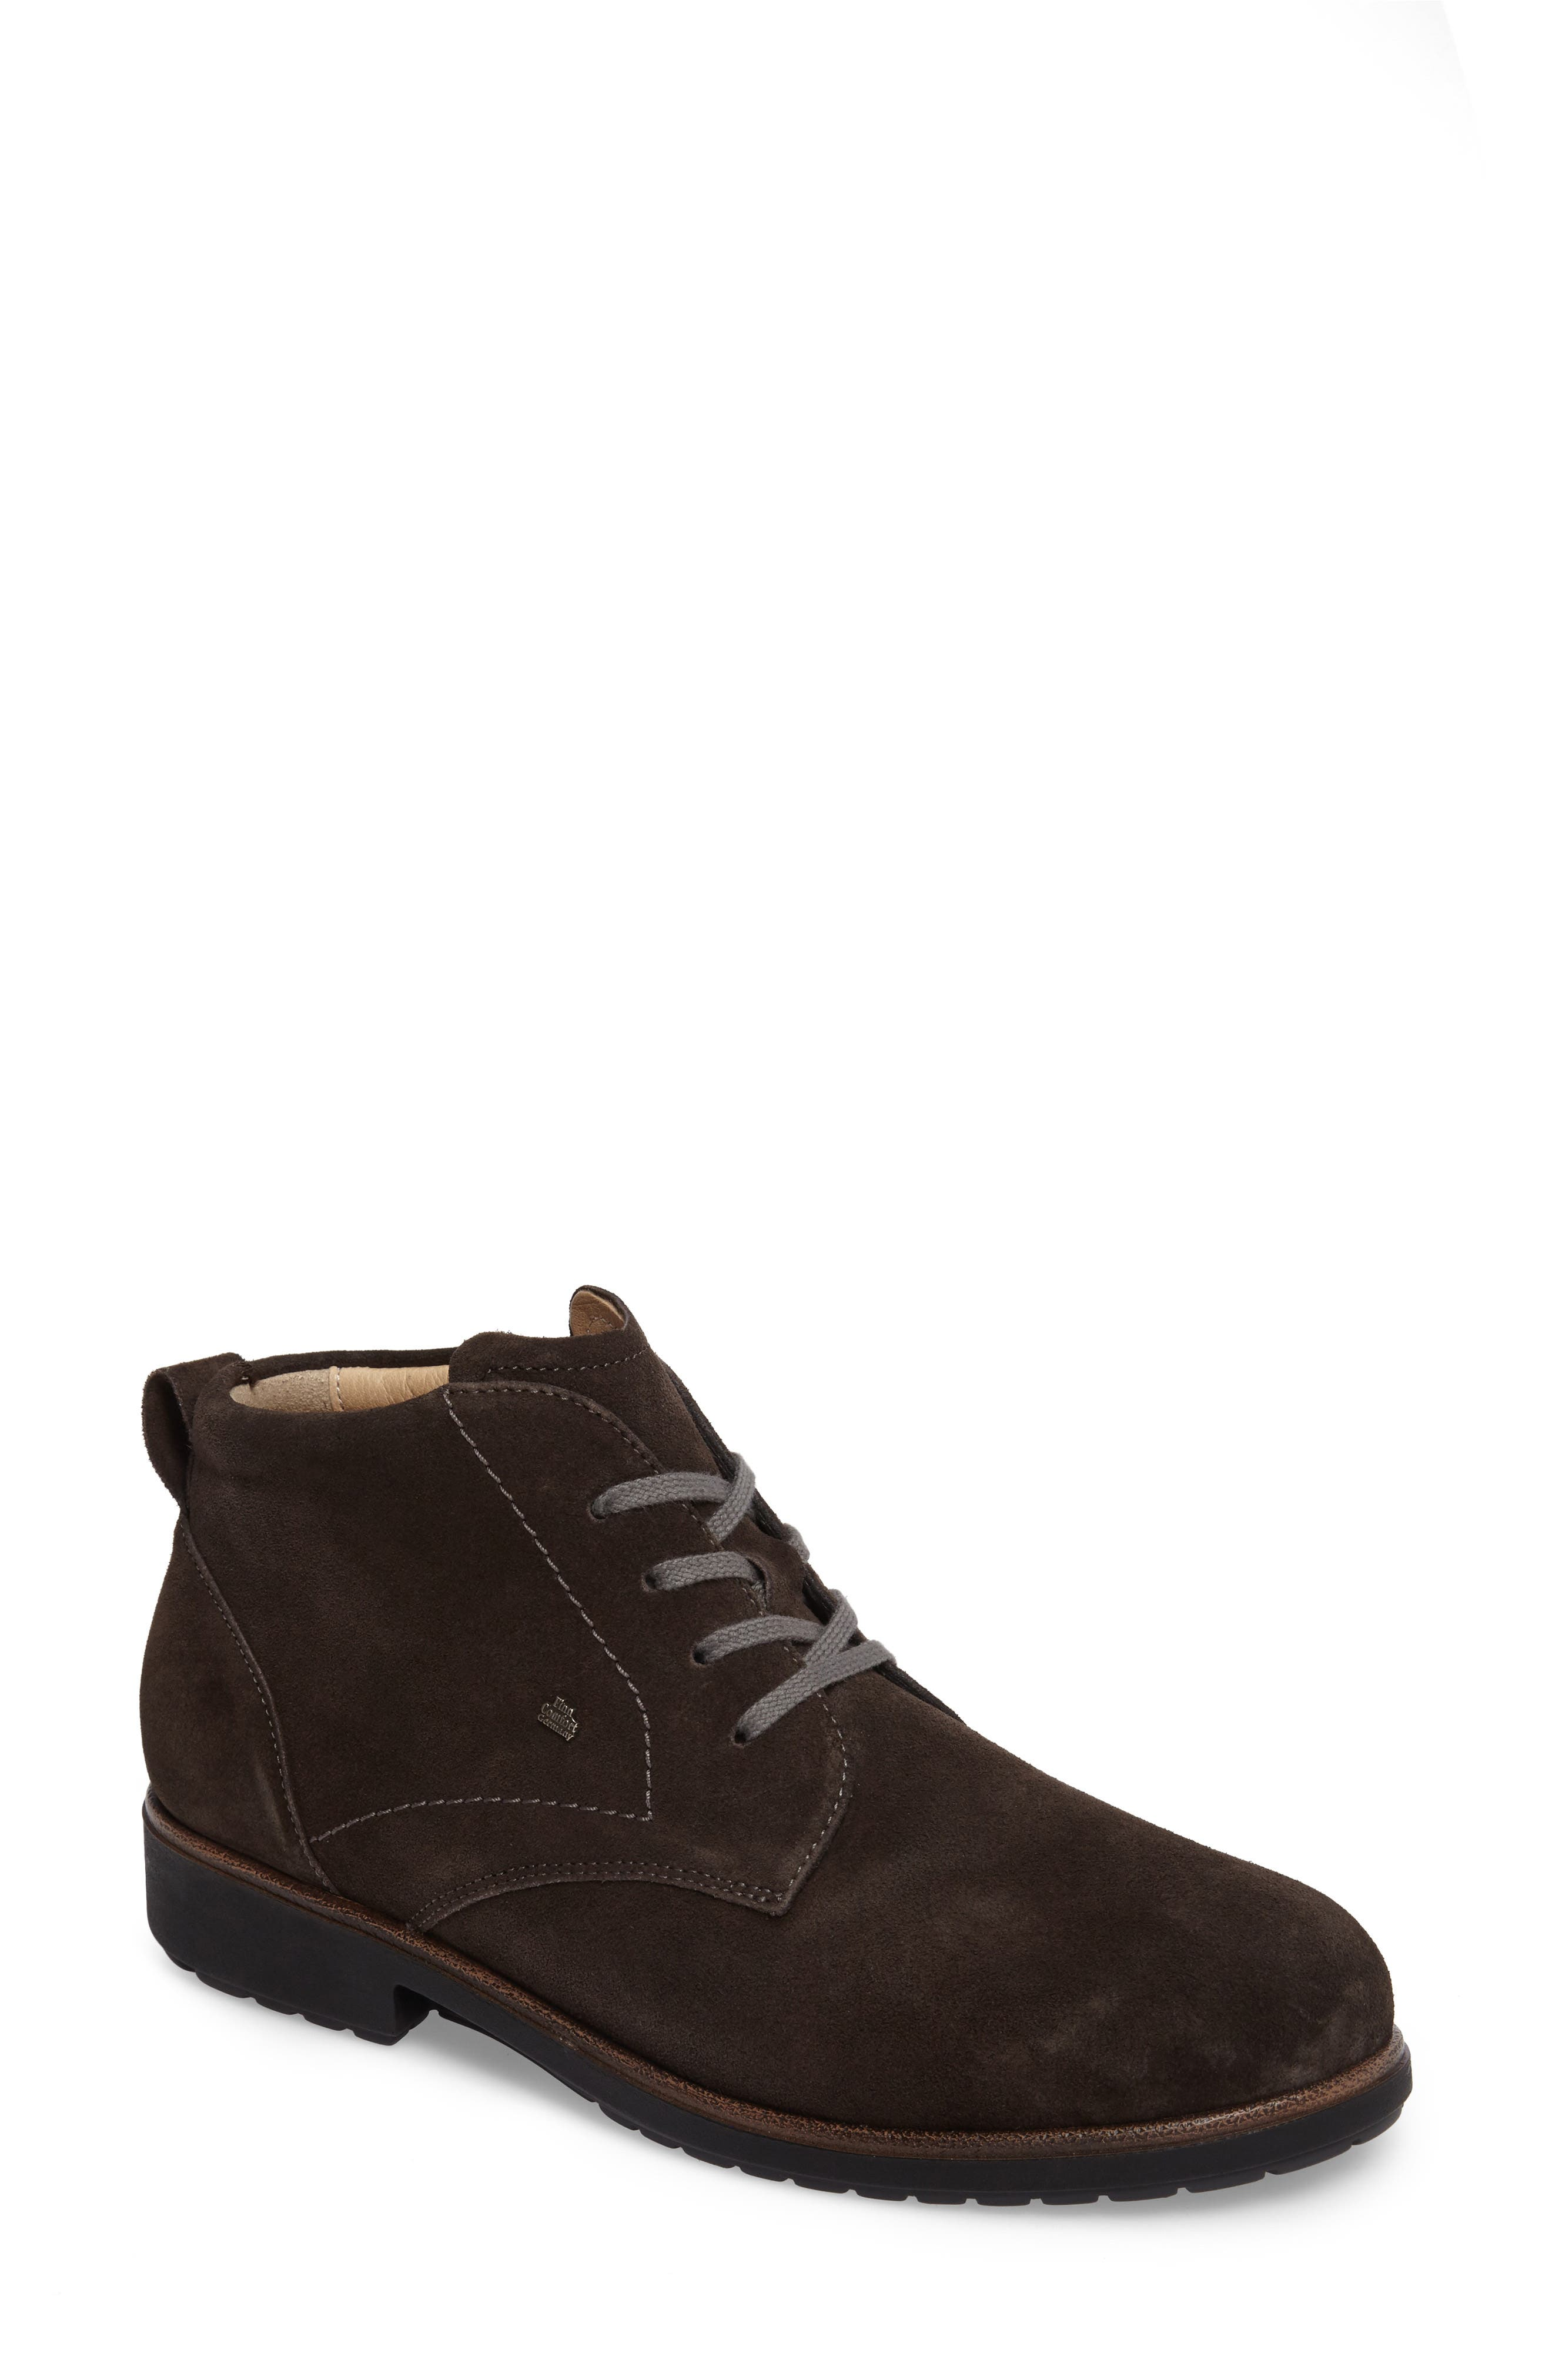 Chukka Boot,                         Main,                         color,